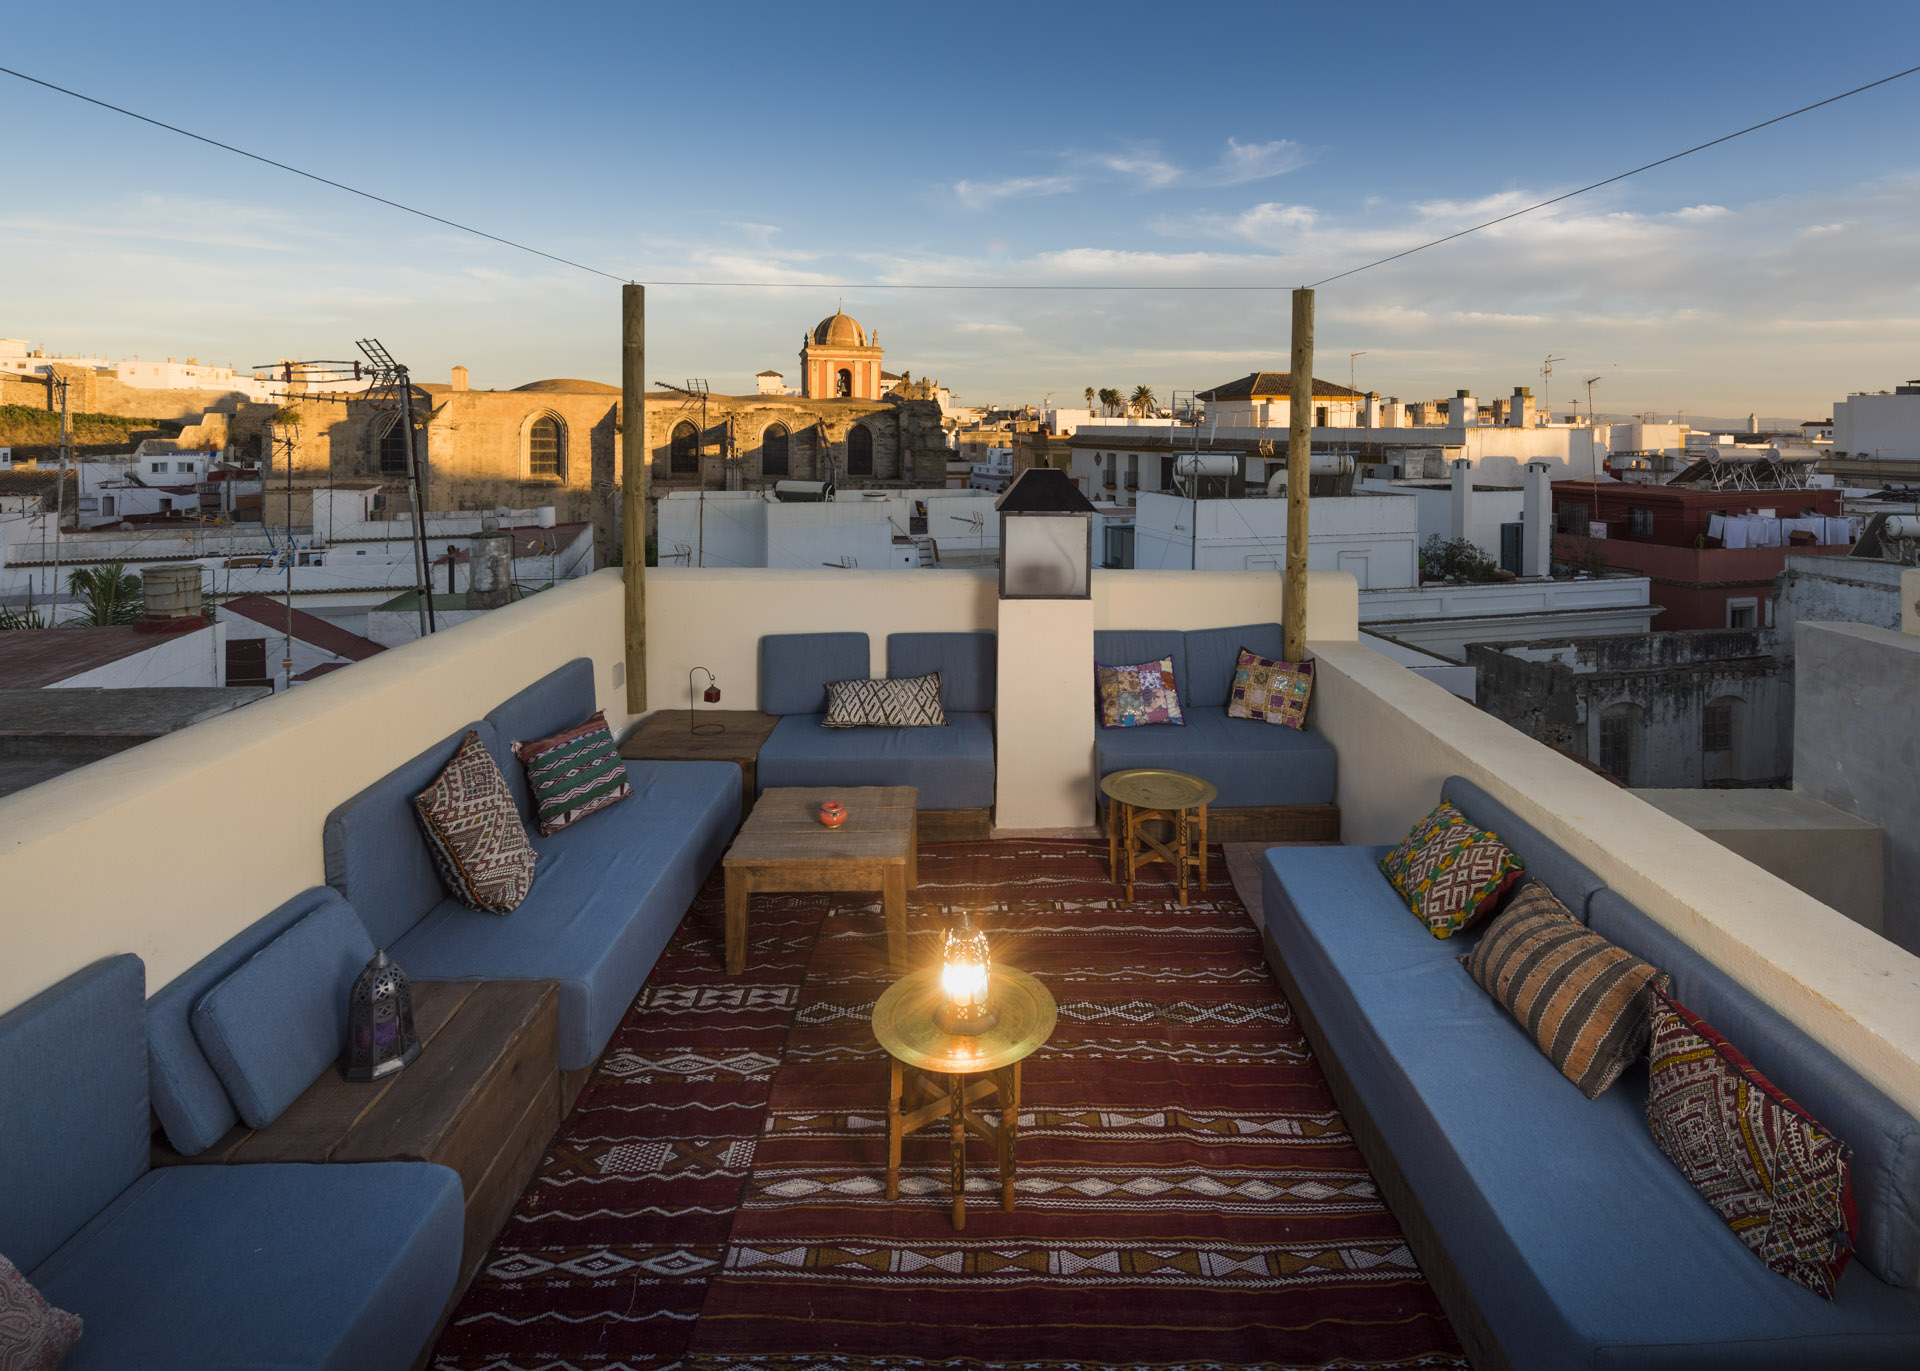 THE RIAD HOTEL TARIFA